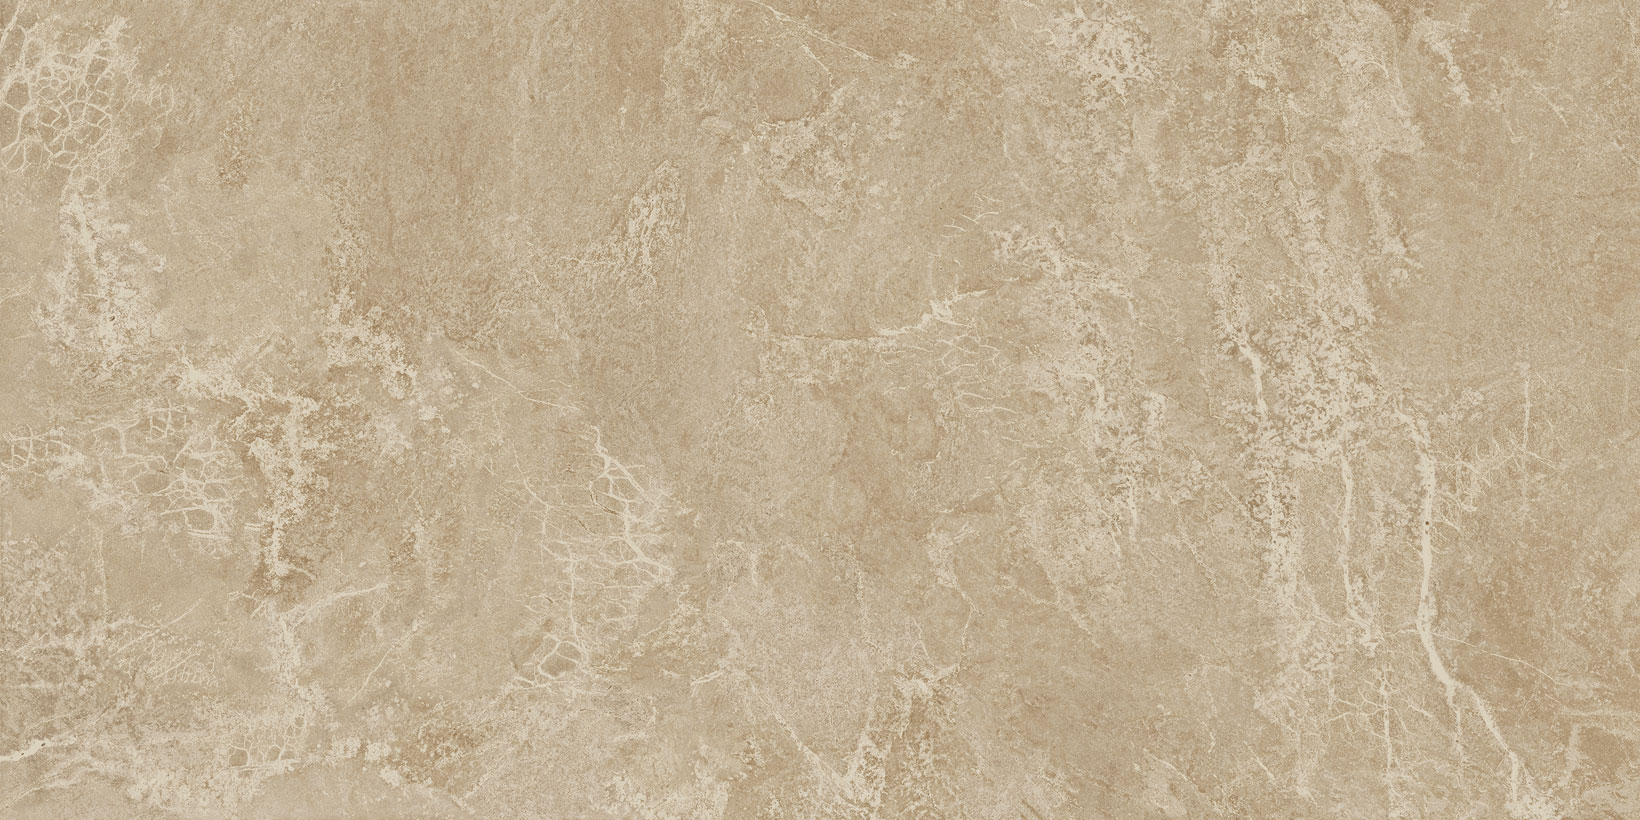 Atlas Concorde Force Beige 60x120 Матовая